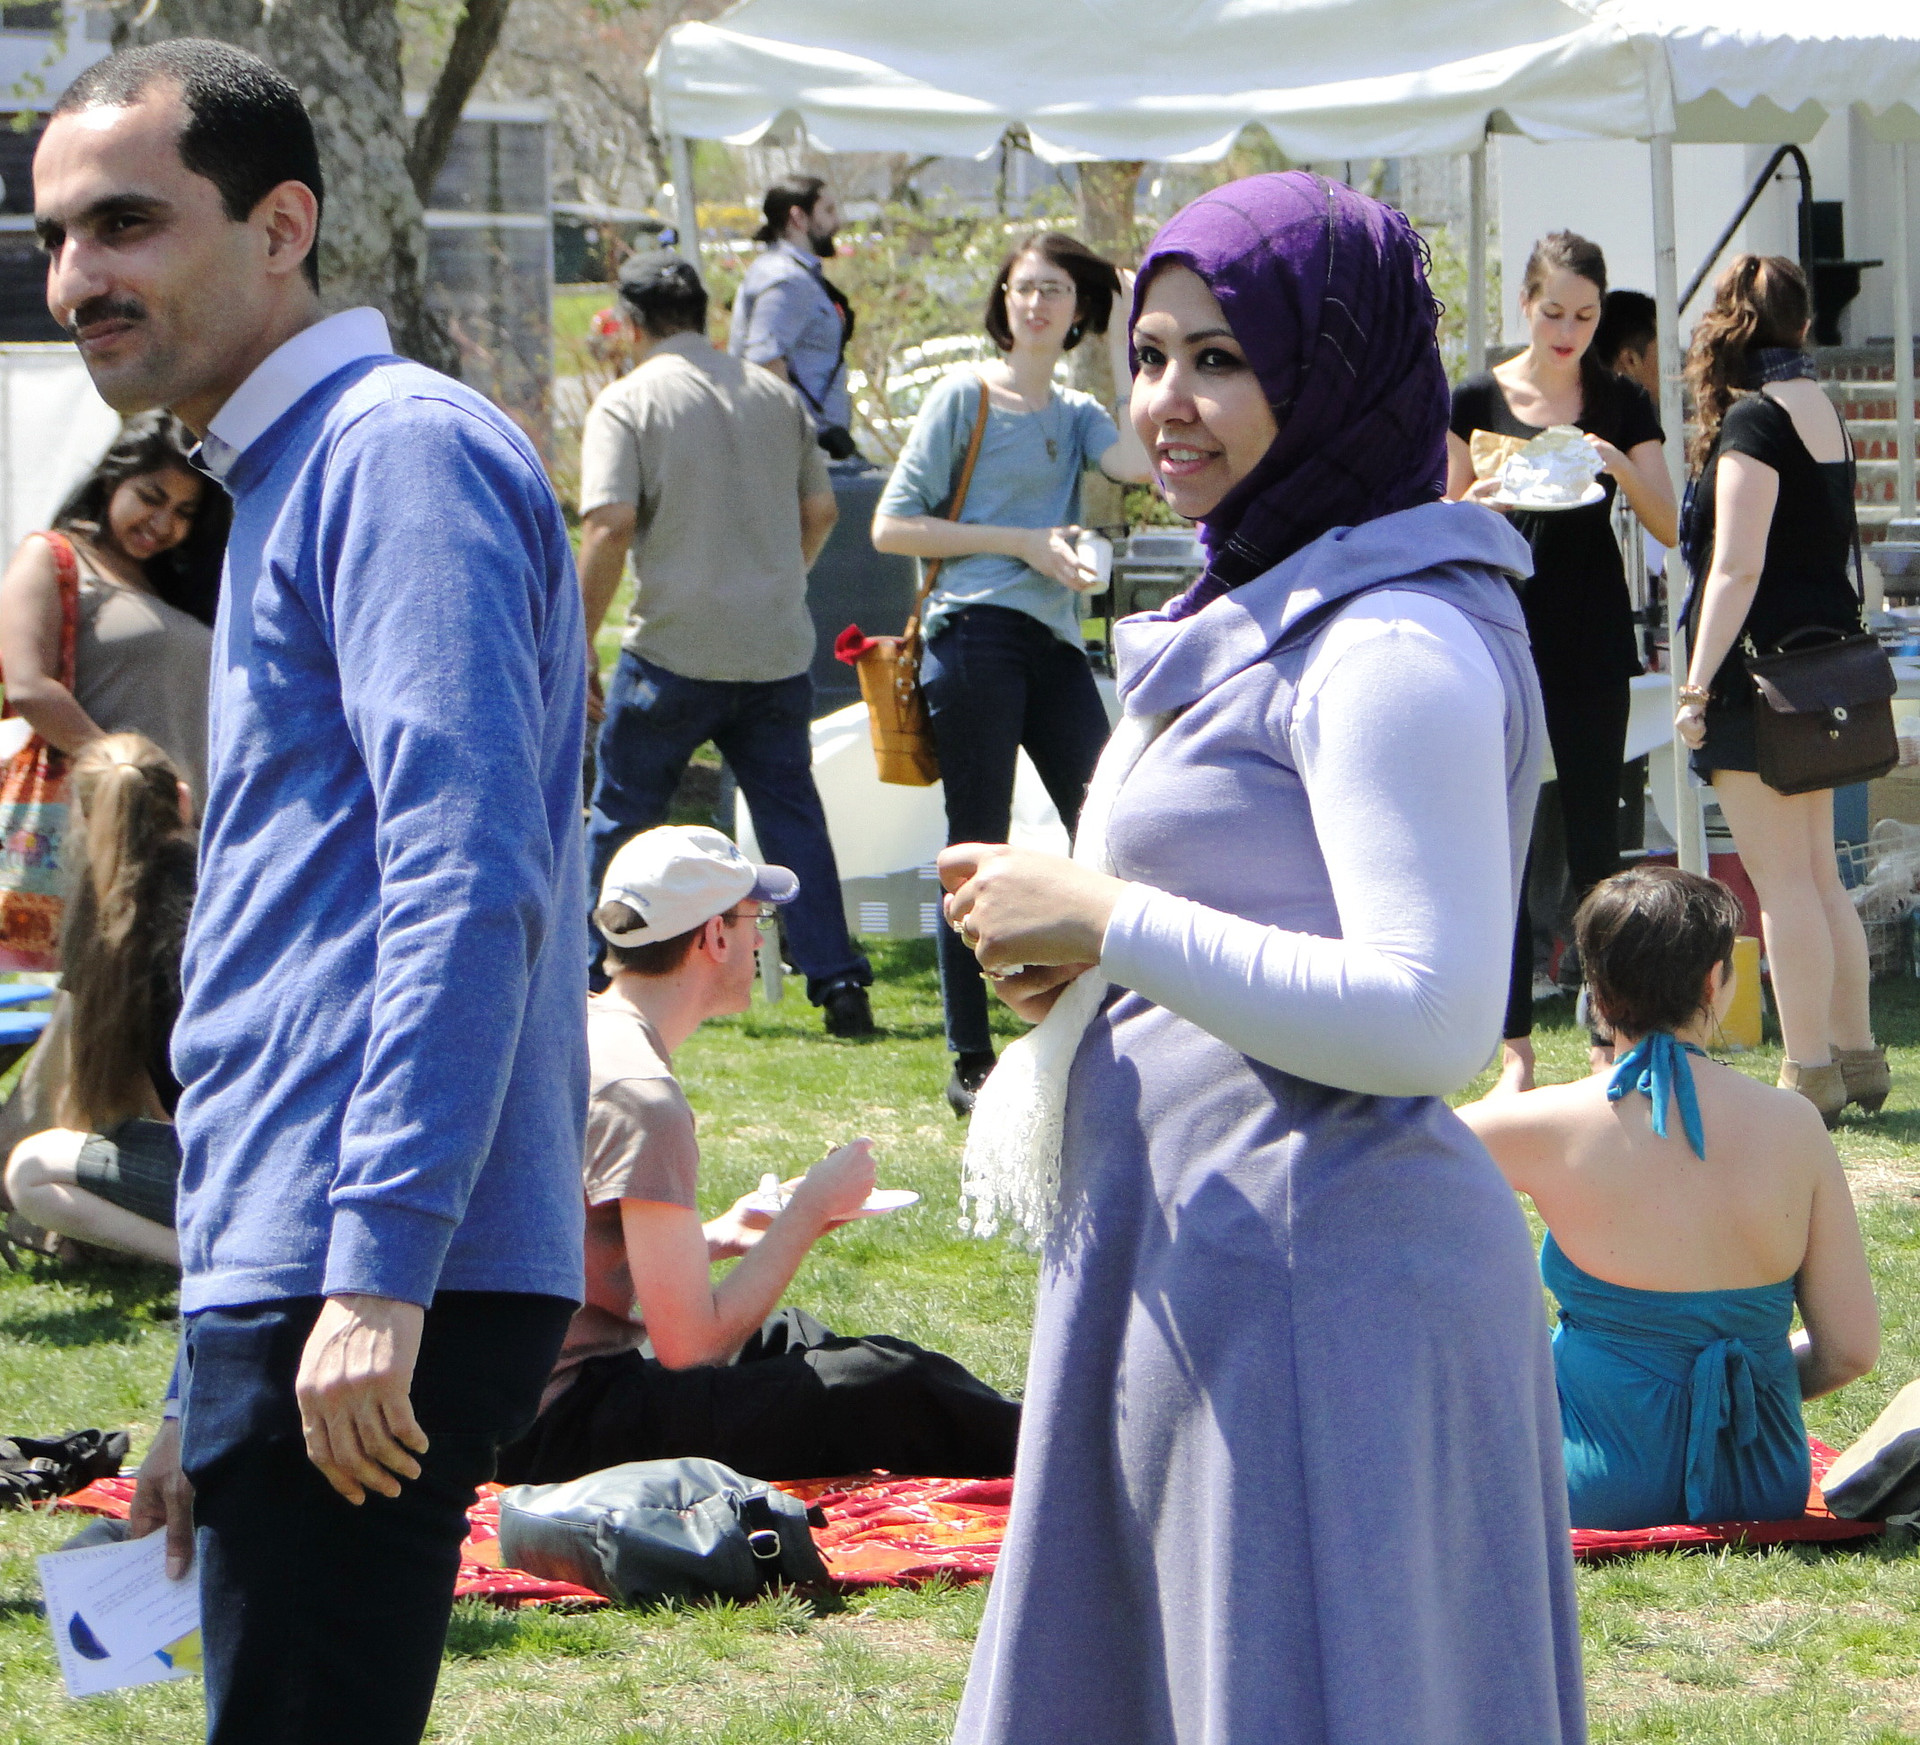 Arabic Cultural Festival at Smith College